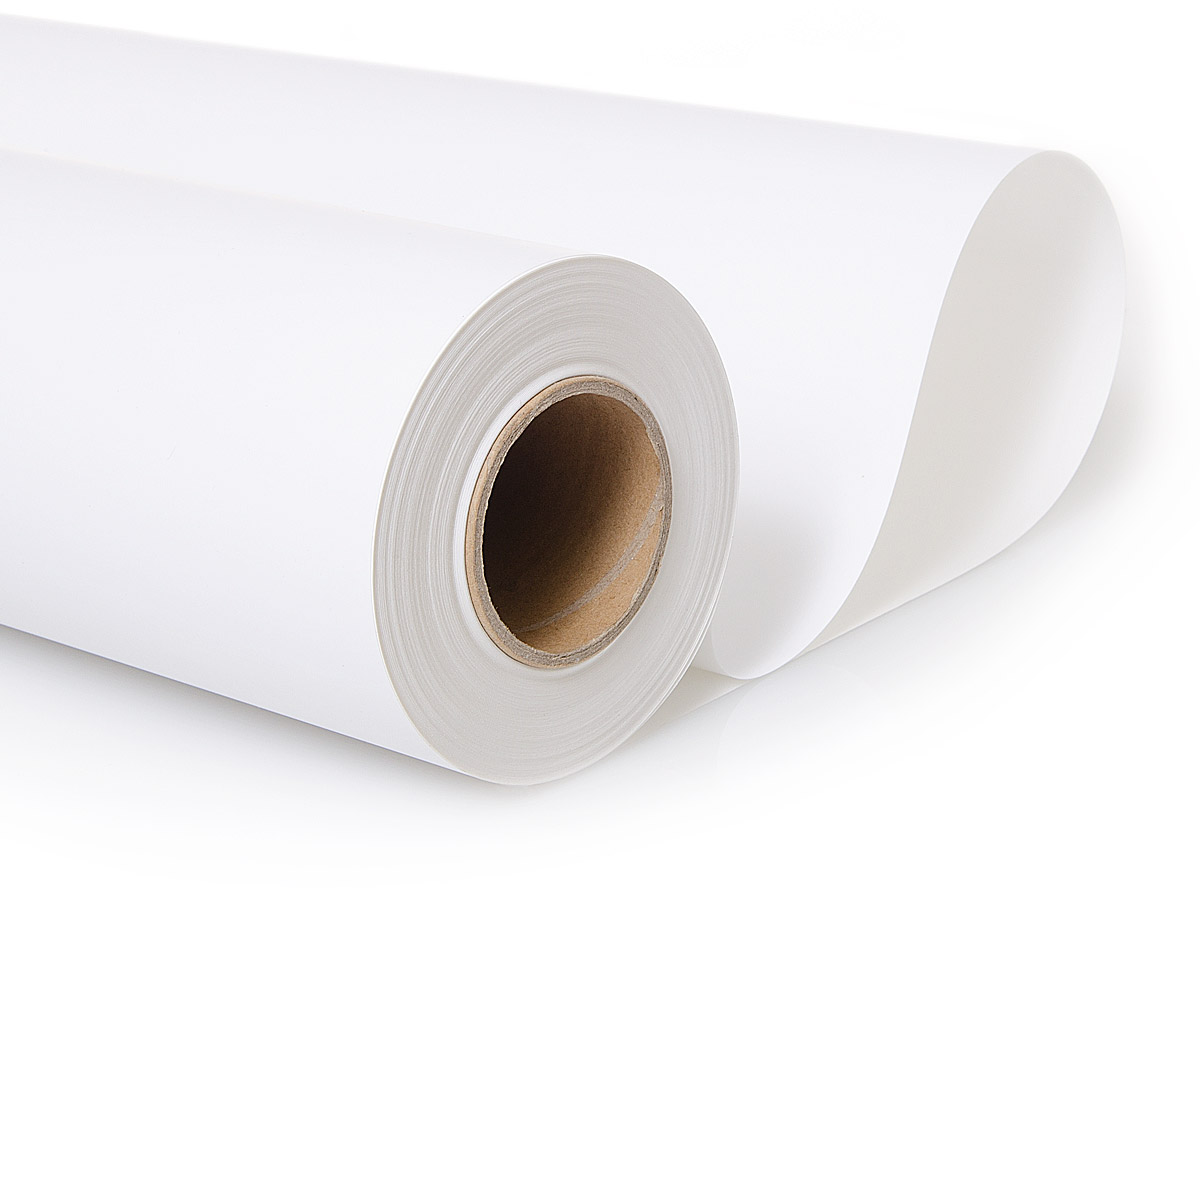 1 Rolle Sublimationspapier | Transferpapier für Sublimation | 61 cm x 100m